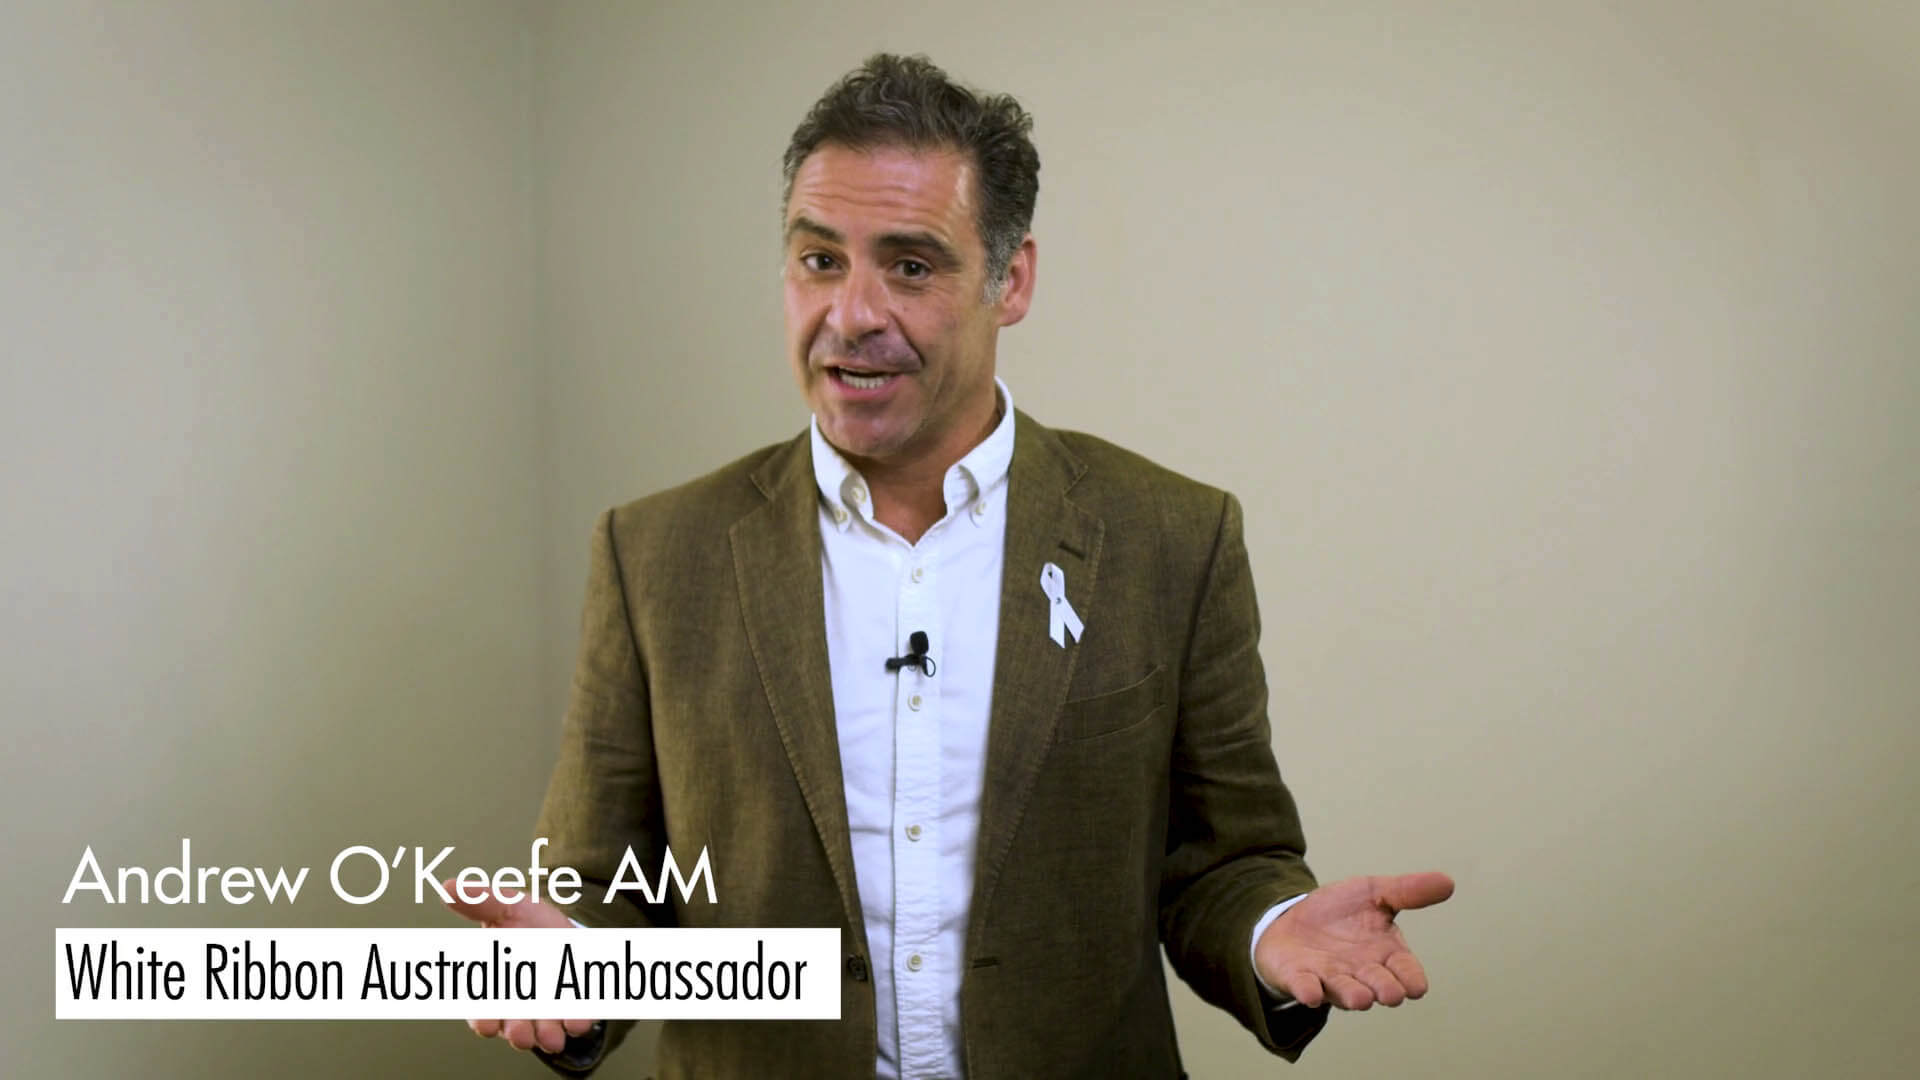 Andrew O'Keefe Video